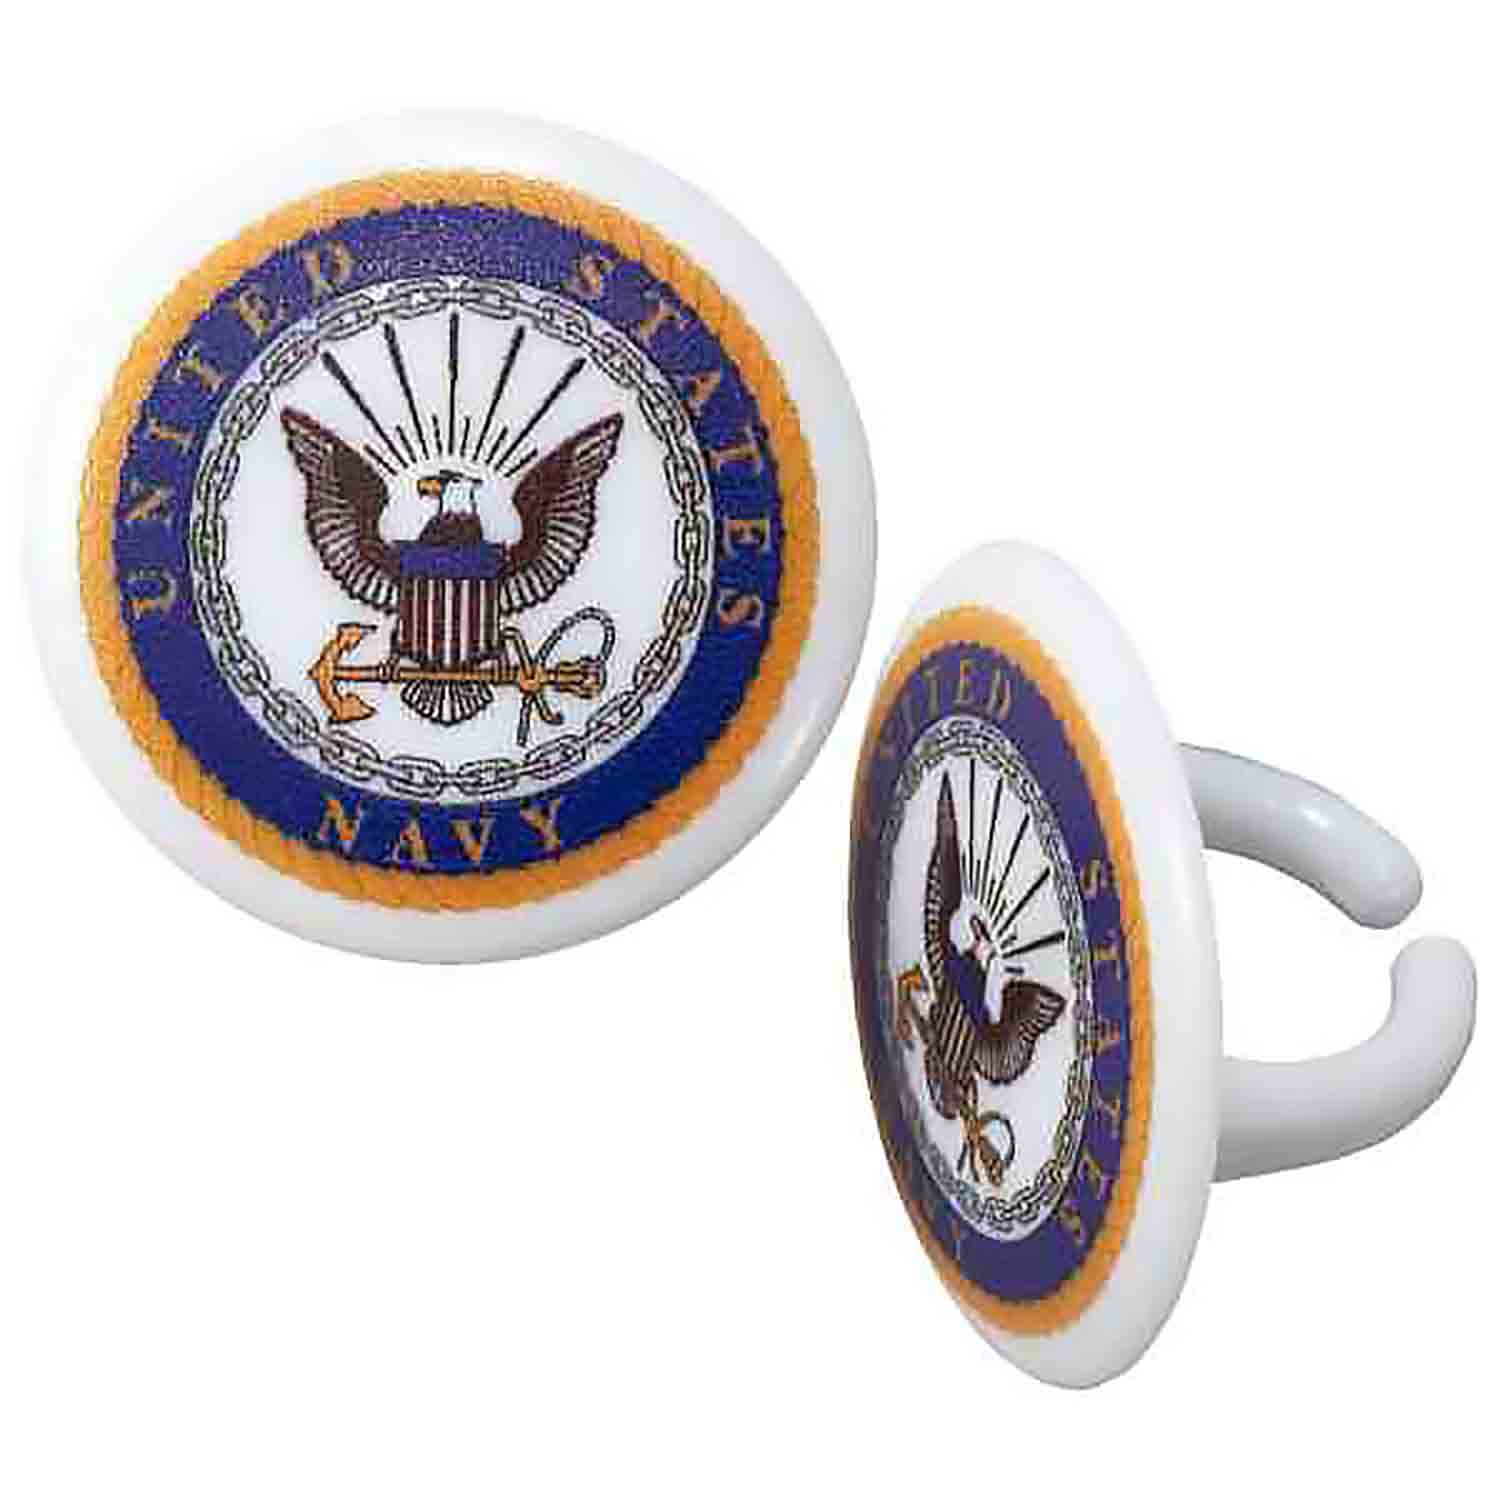 United States Navy Rings